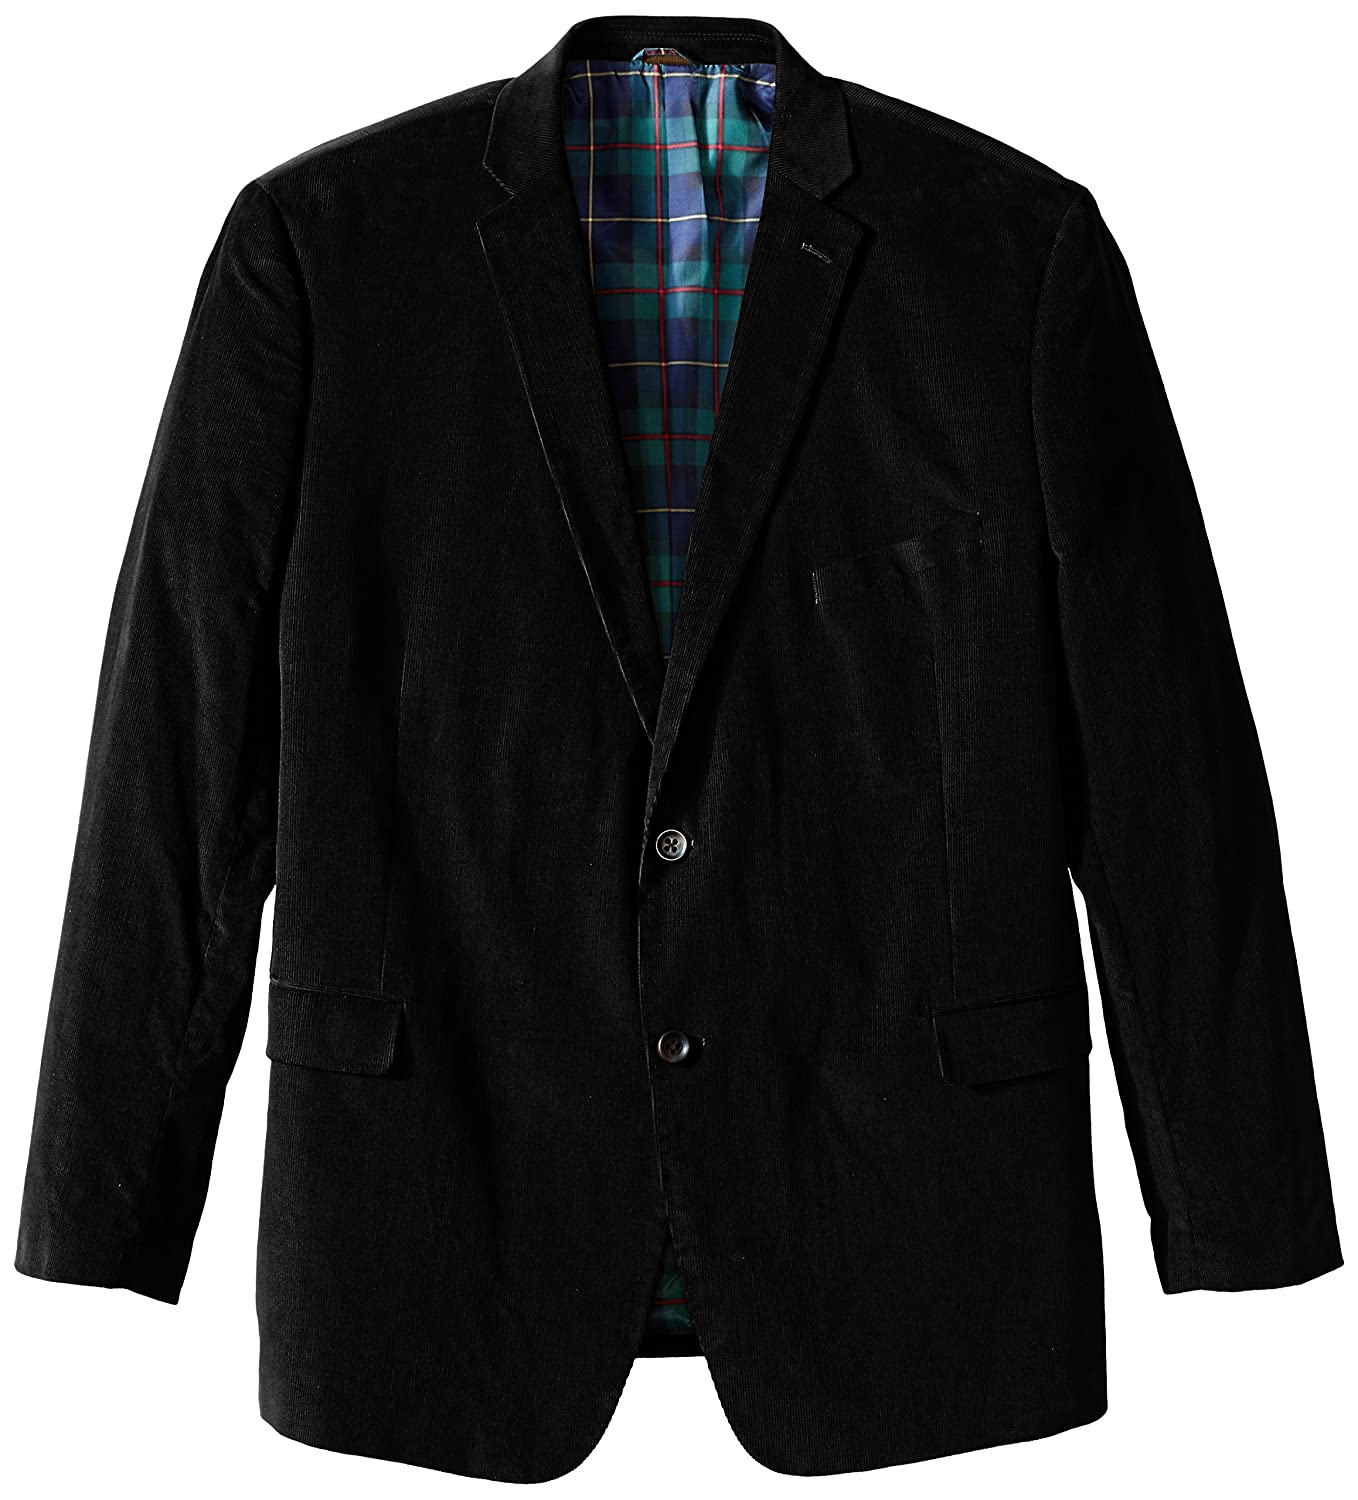 U.S. Polo Assn. Men's Big and Tall Corduroy Sport Coat